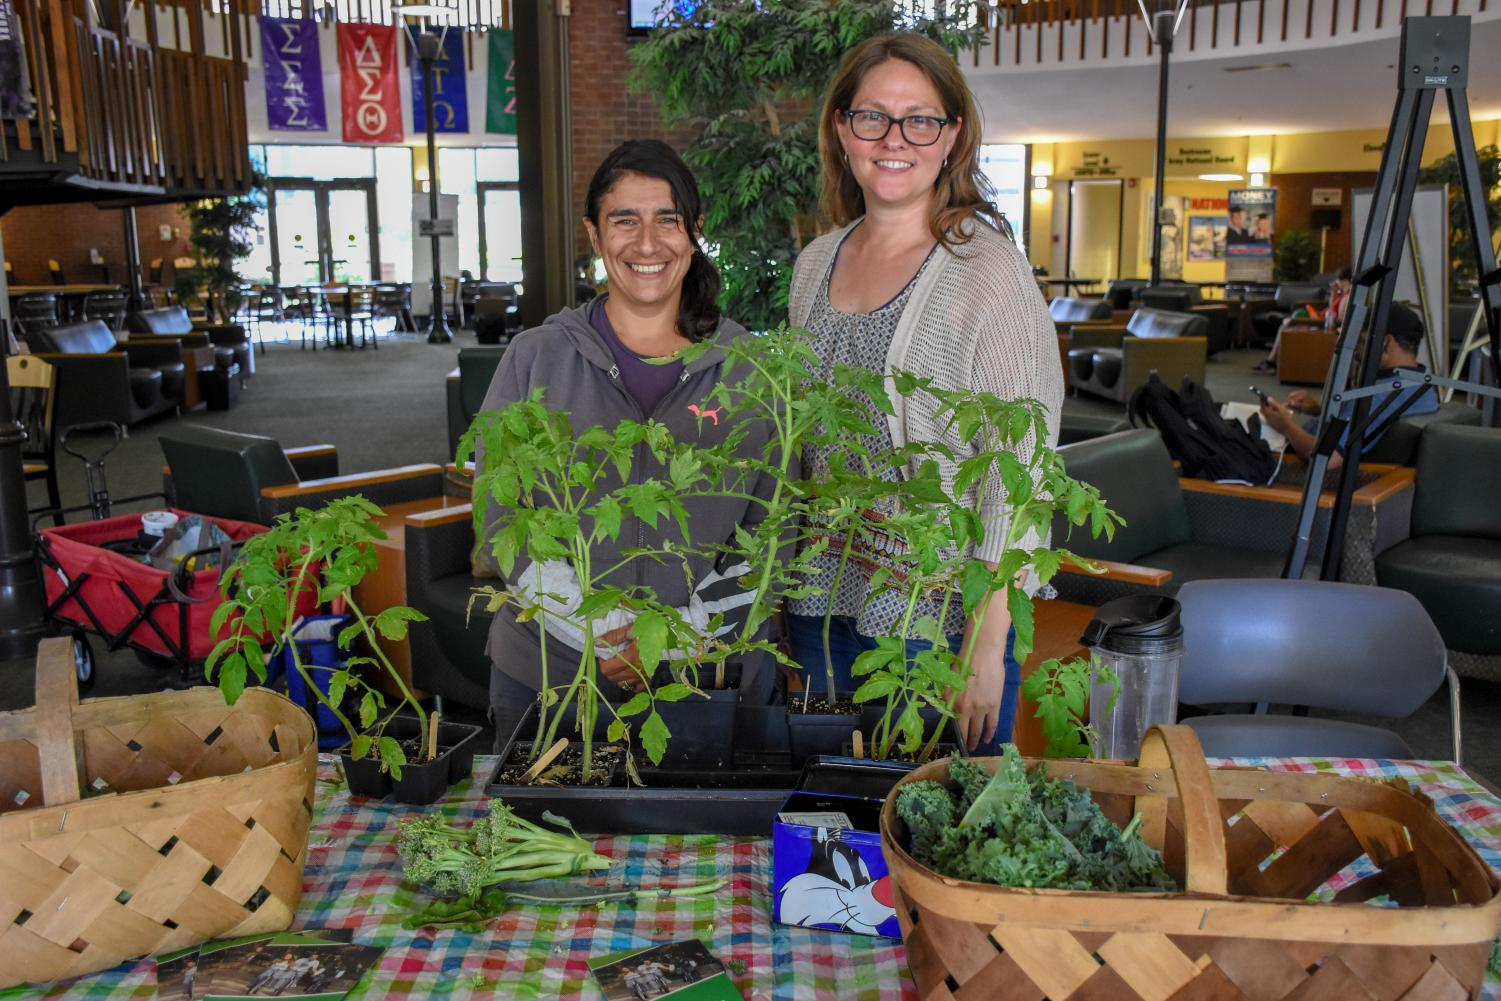 Angela Kargul and Amy Parsons-White at the Memorial Student Center holding their weekly farmer's market.